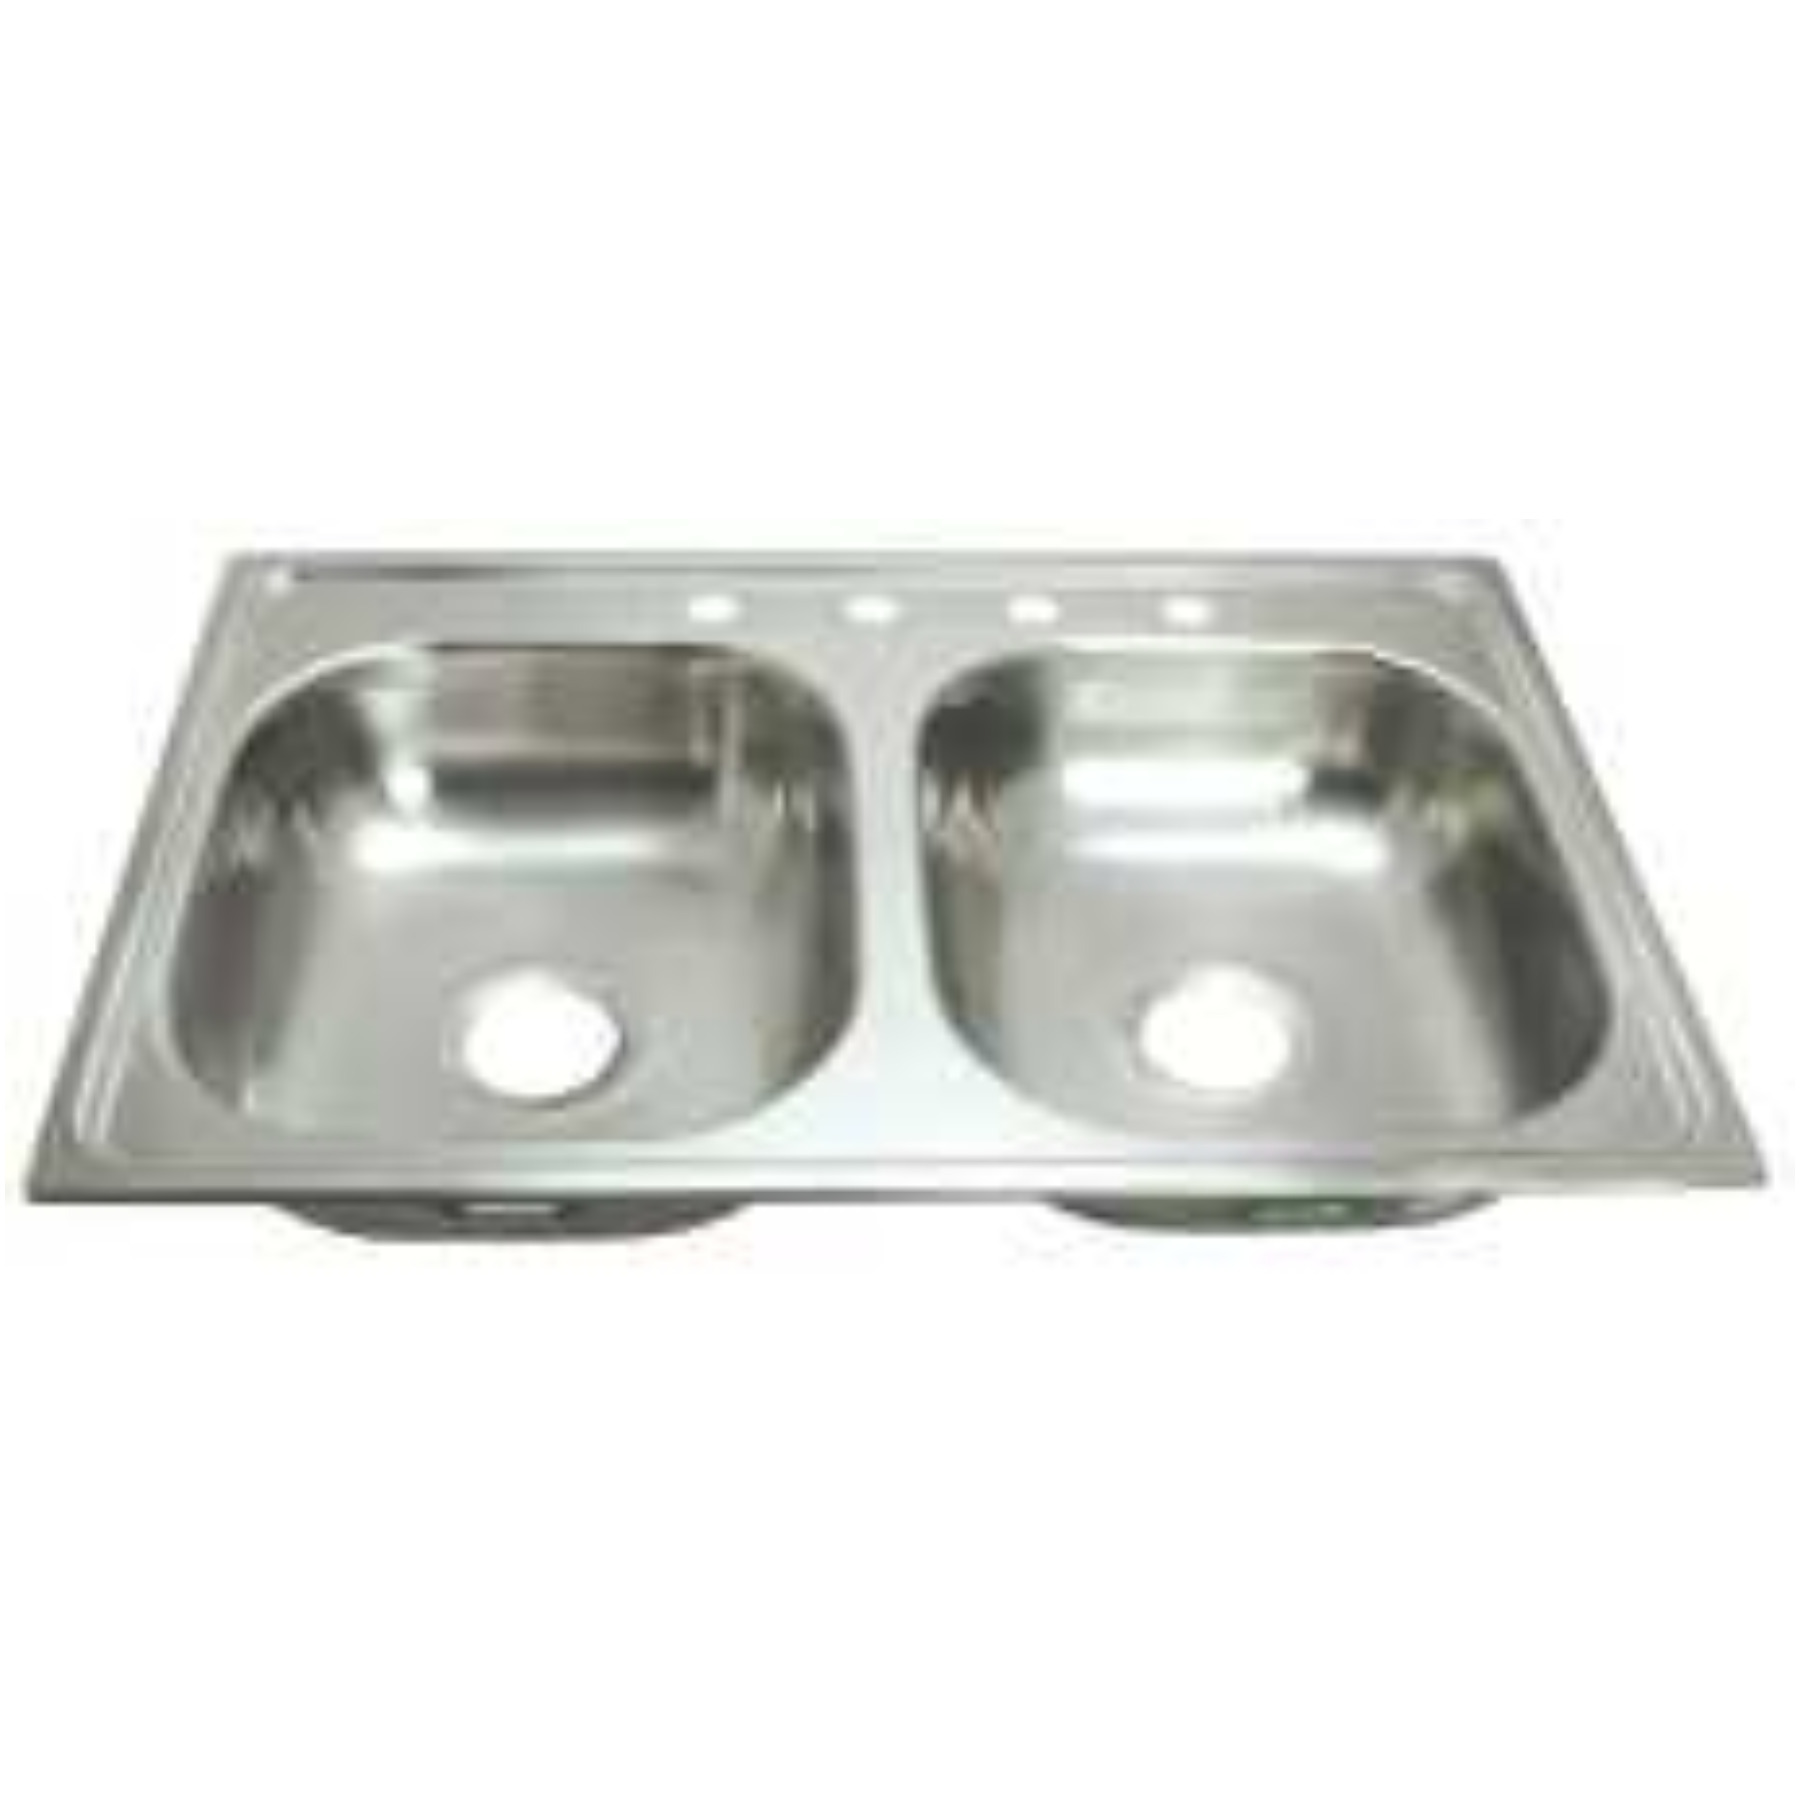 PROPLUS� 4-HOLE DOUBLE BOWL KITCHEN SINK, 20-GAUGE, STAINLESS STEEL, 33 X 22 X 8 IN.